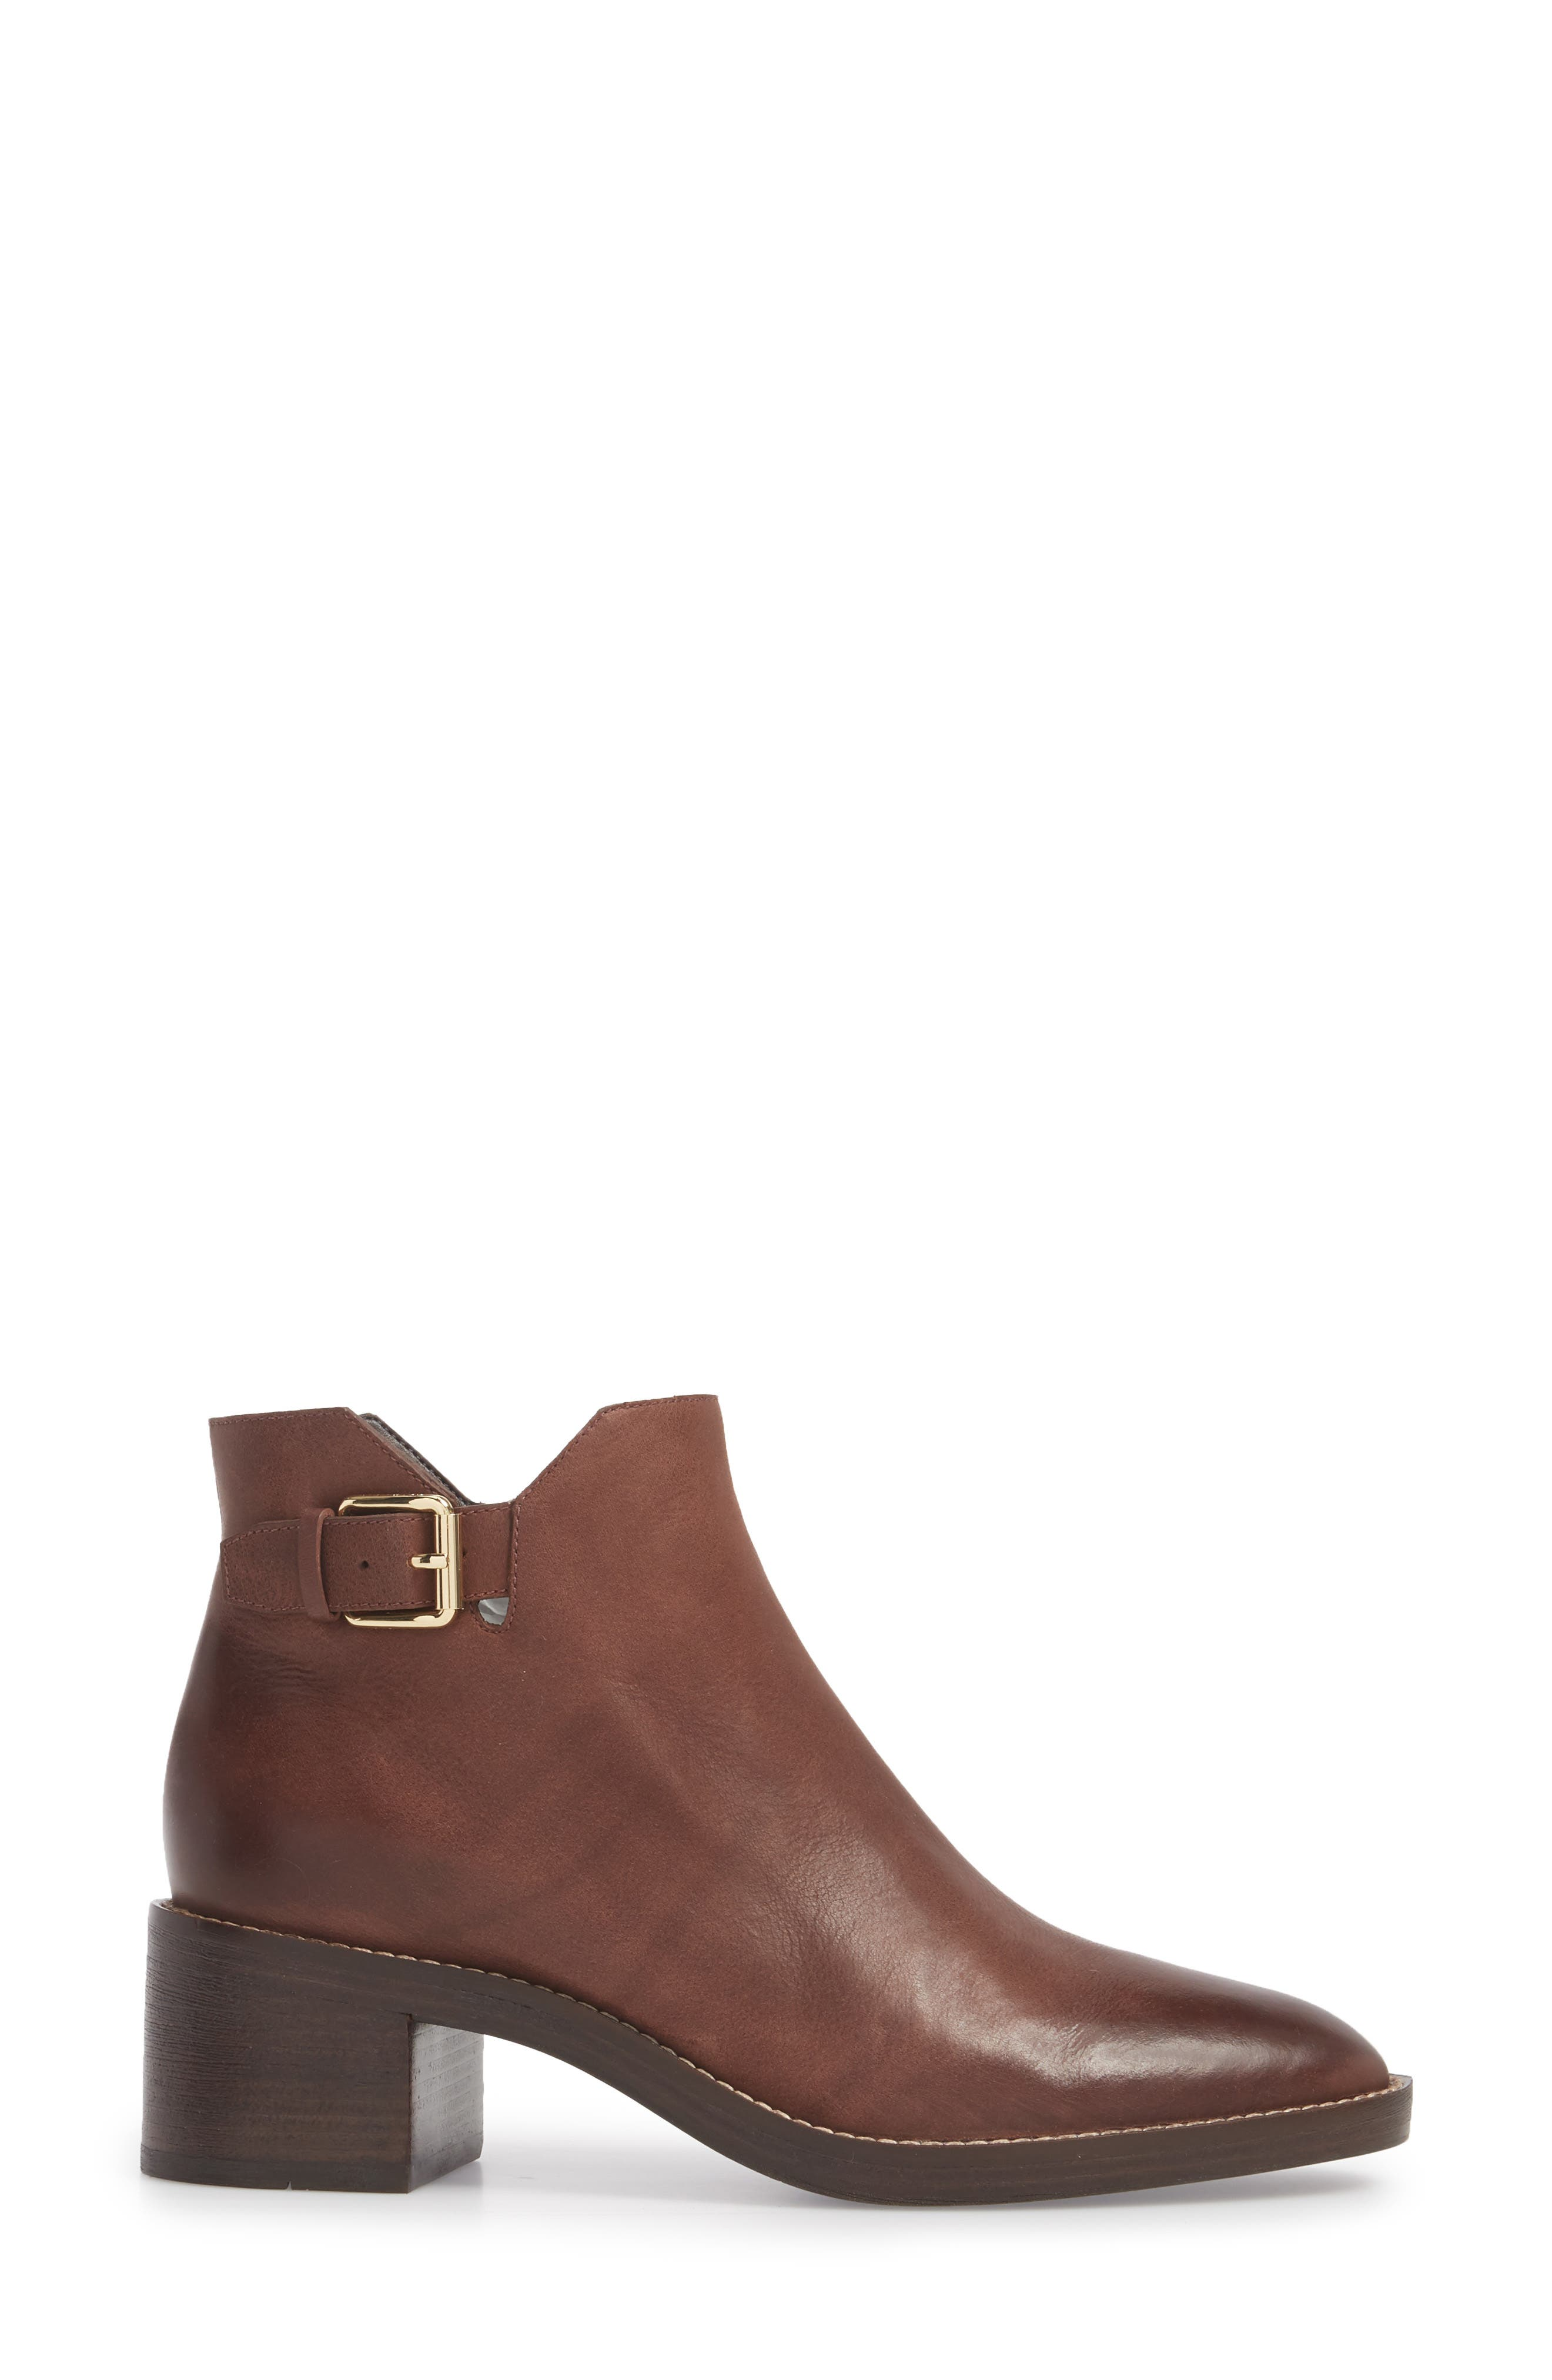 Harrington Grand Buckle Bootie,                             Alternate thumbnail 3, color,                             Chocolate Leather